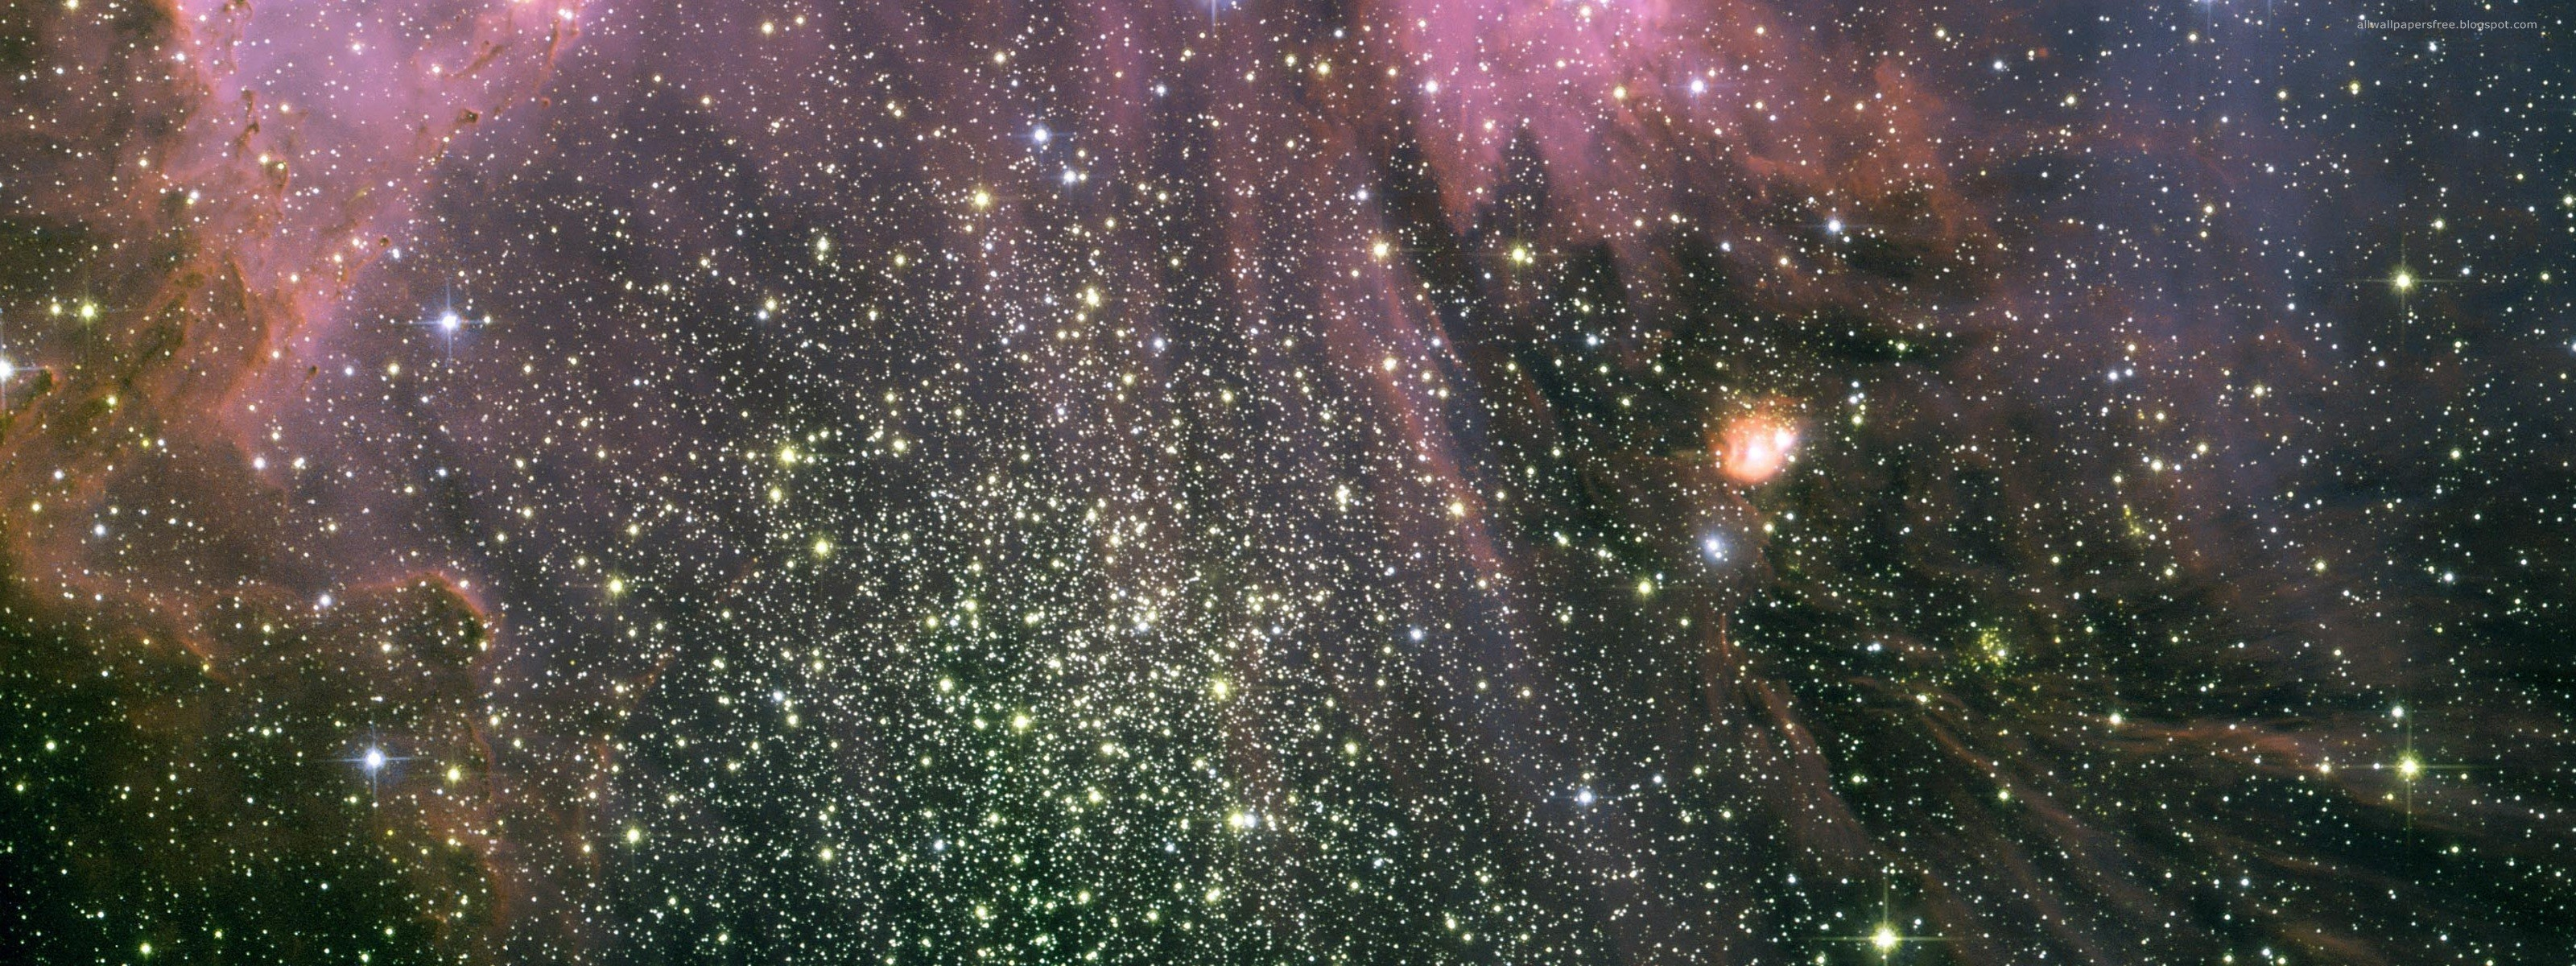 Outer space hubble wallpaper     22247   WallpaperUP